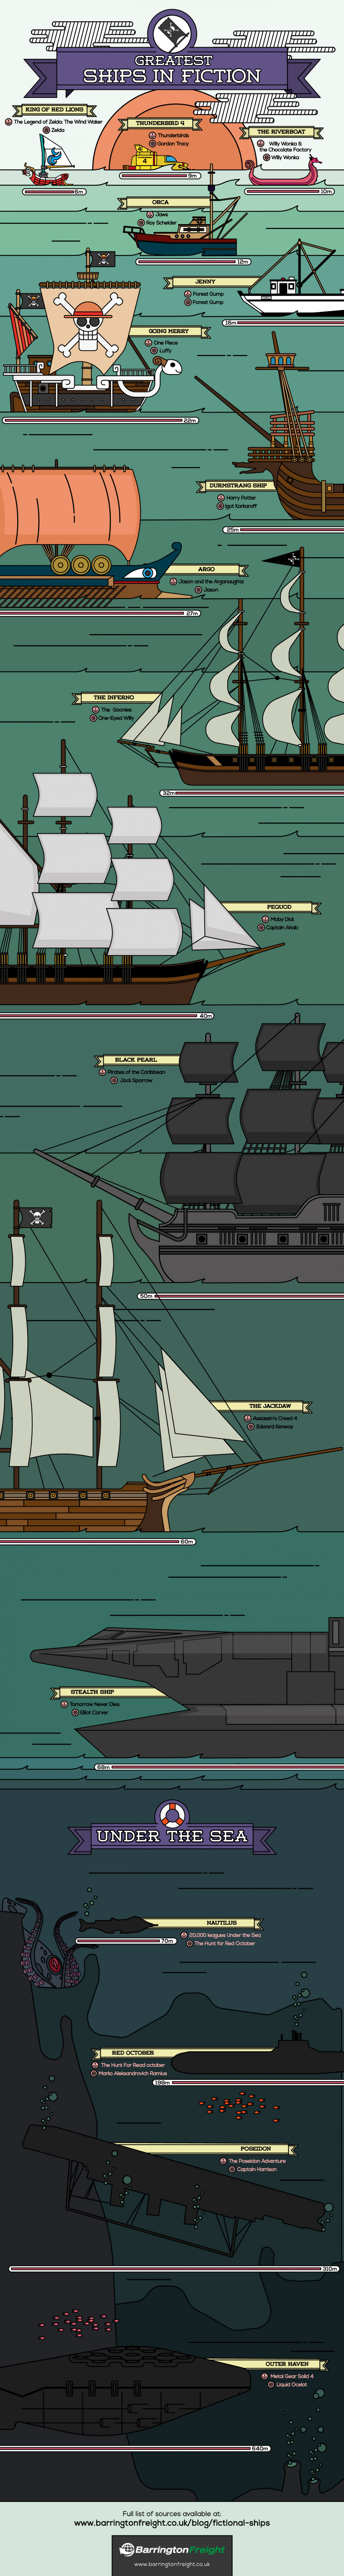 Greatest Ships throughout Fiction Infographic